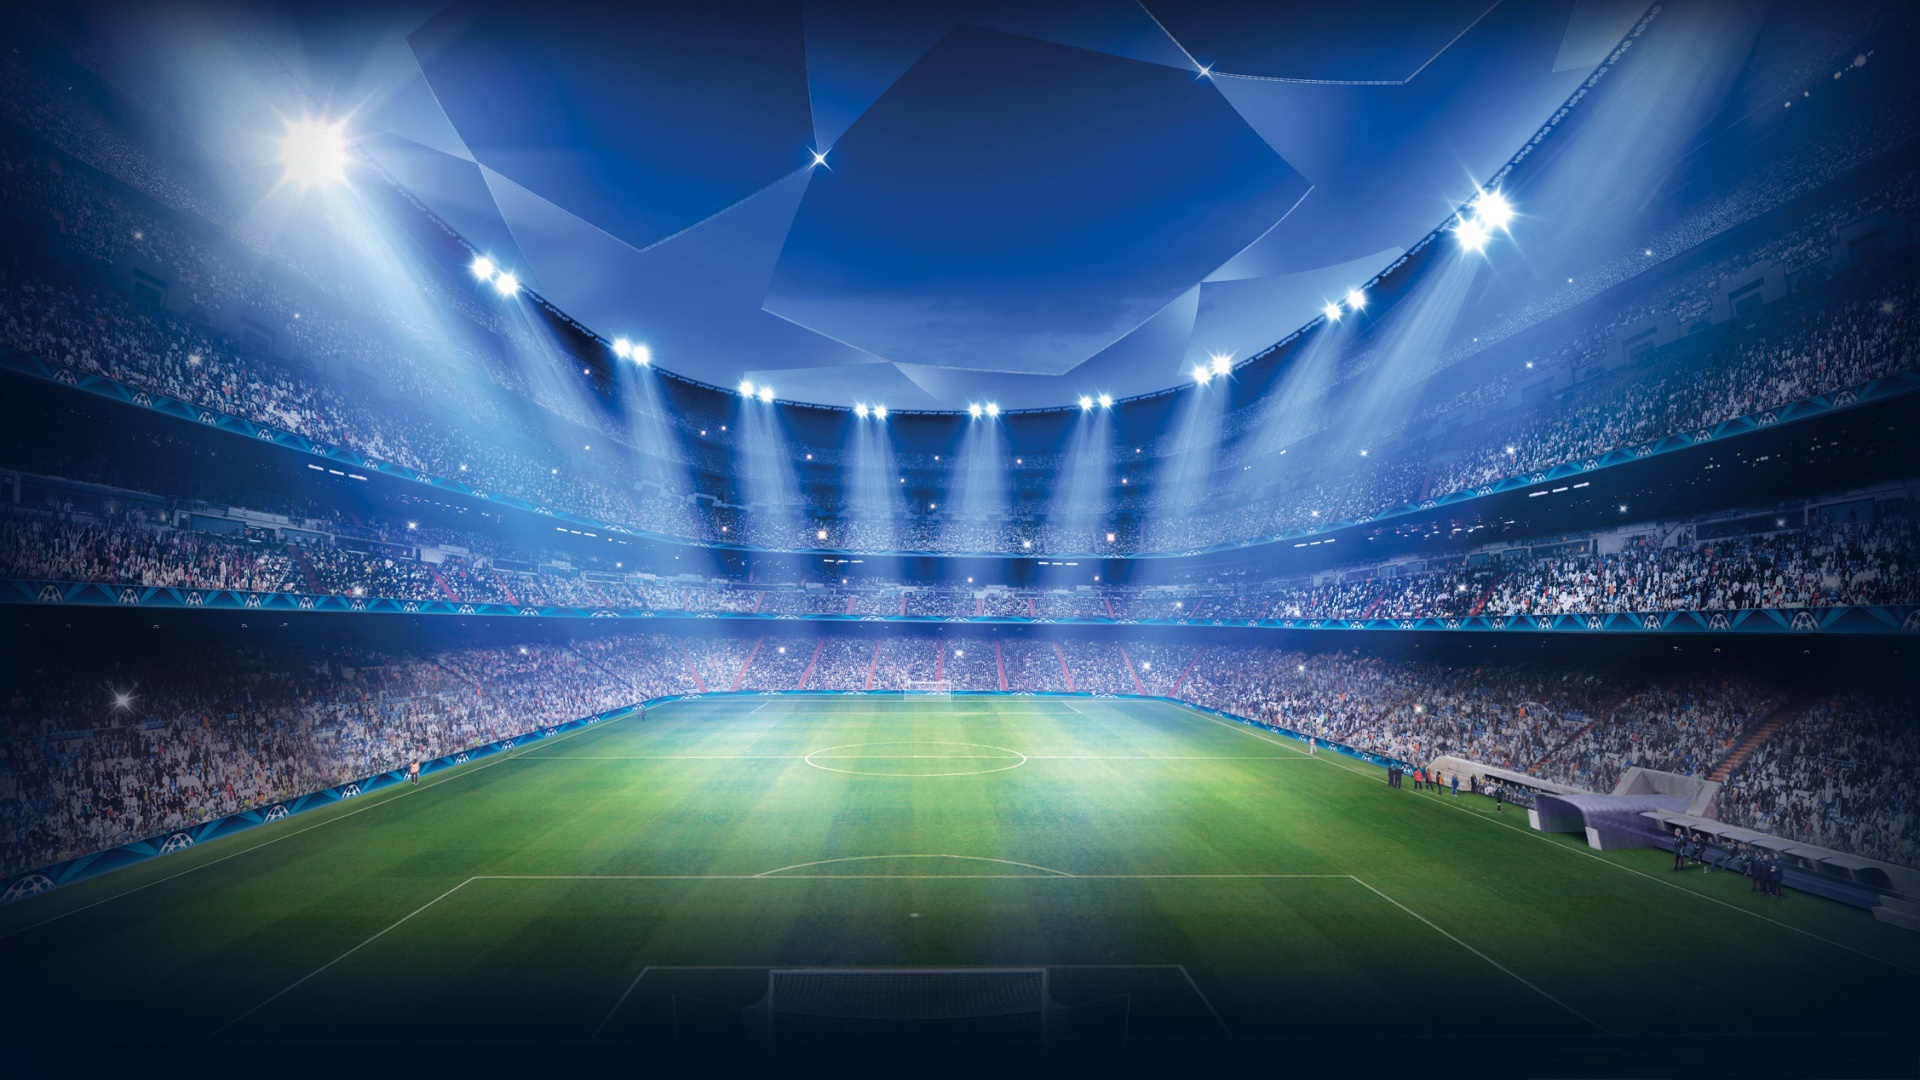 hd wallpaper football stadium wallpapers55com   Best Wallpapers for 1920x1080